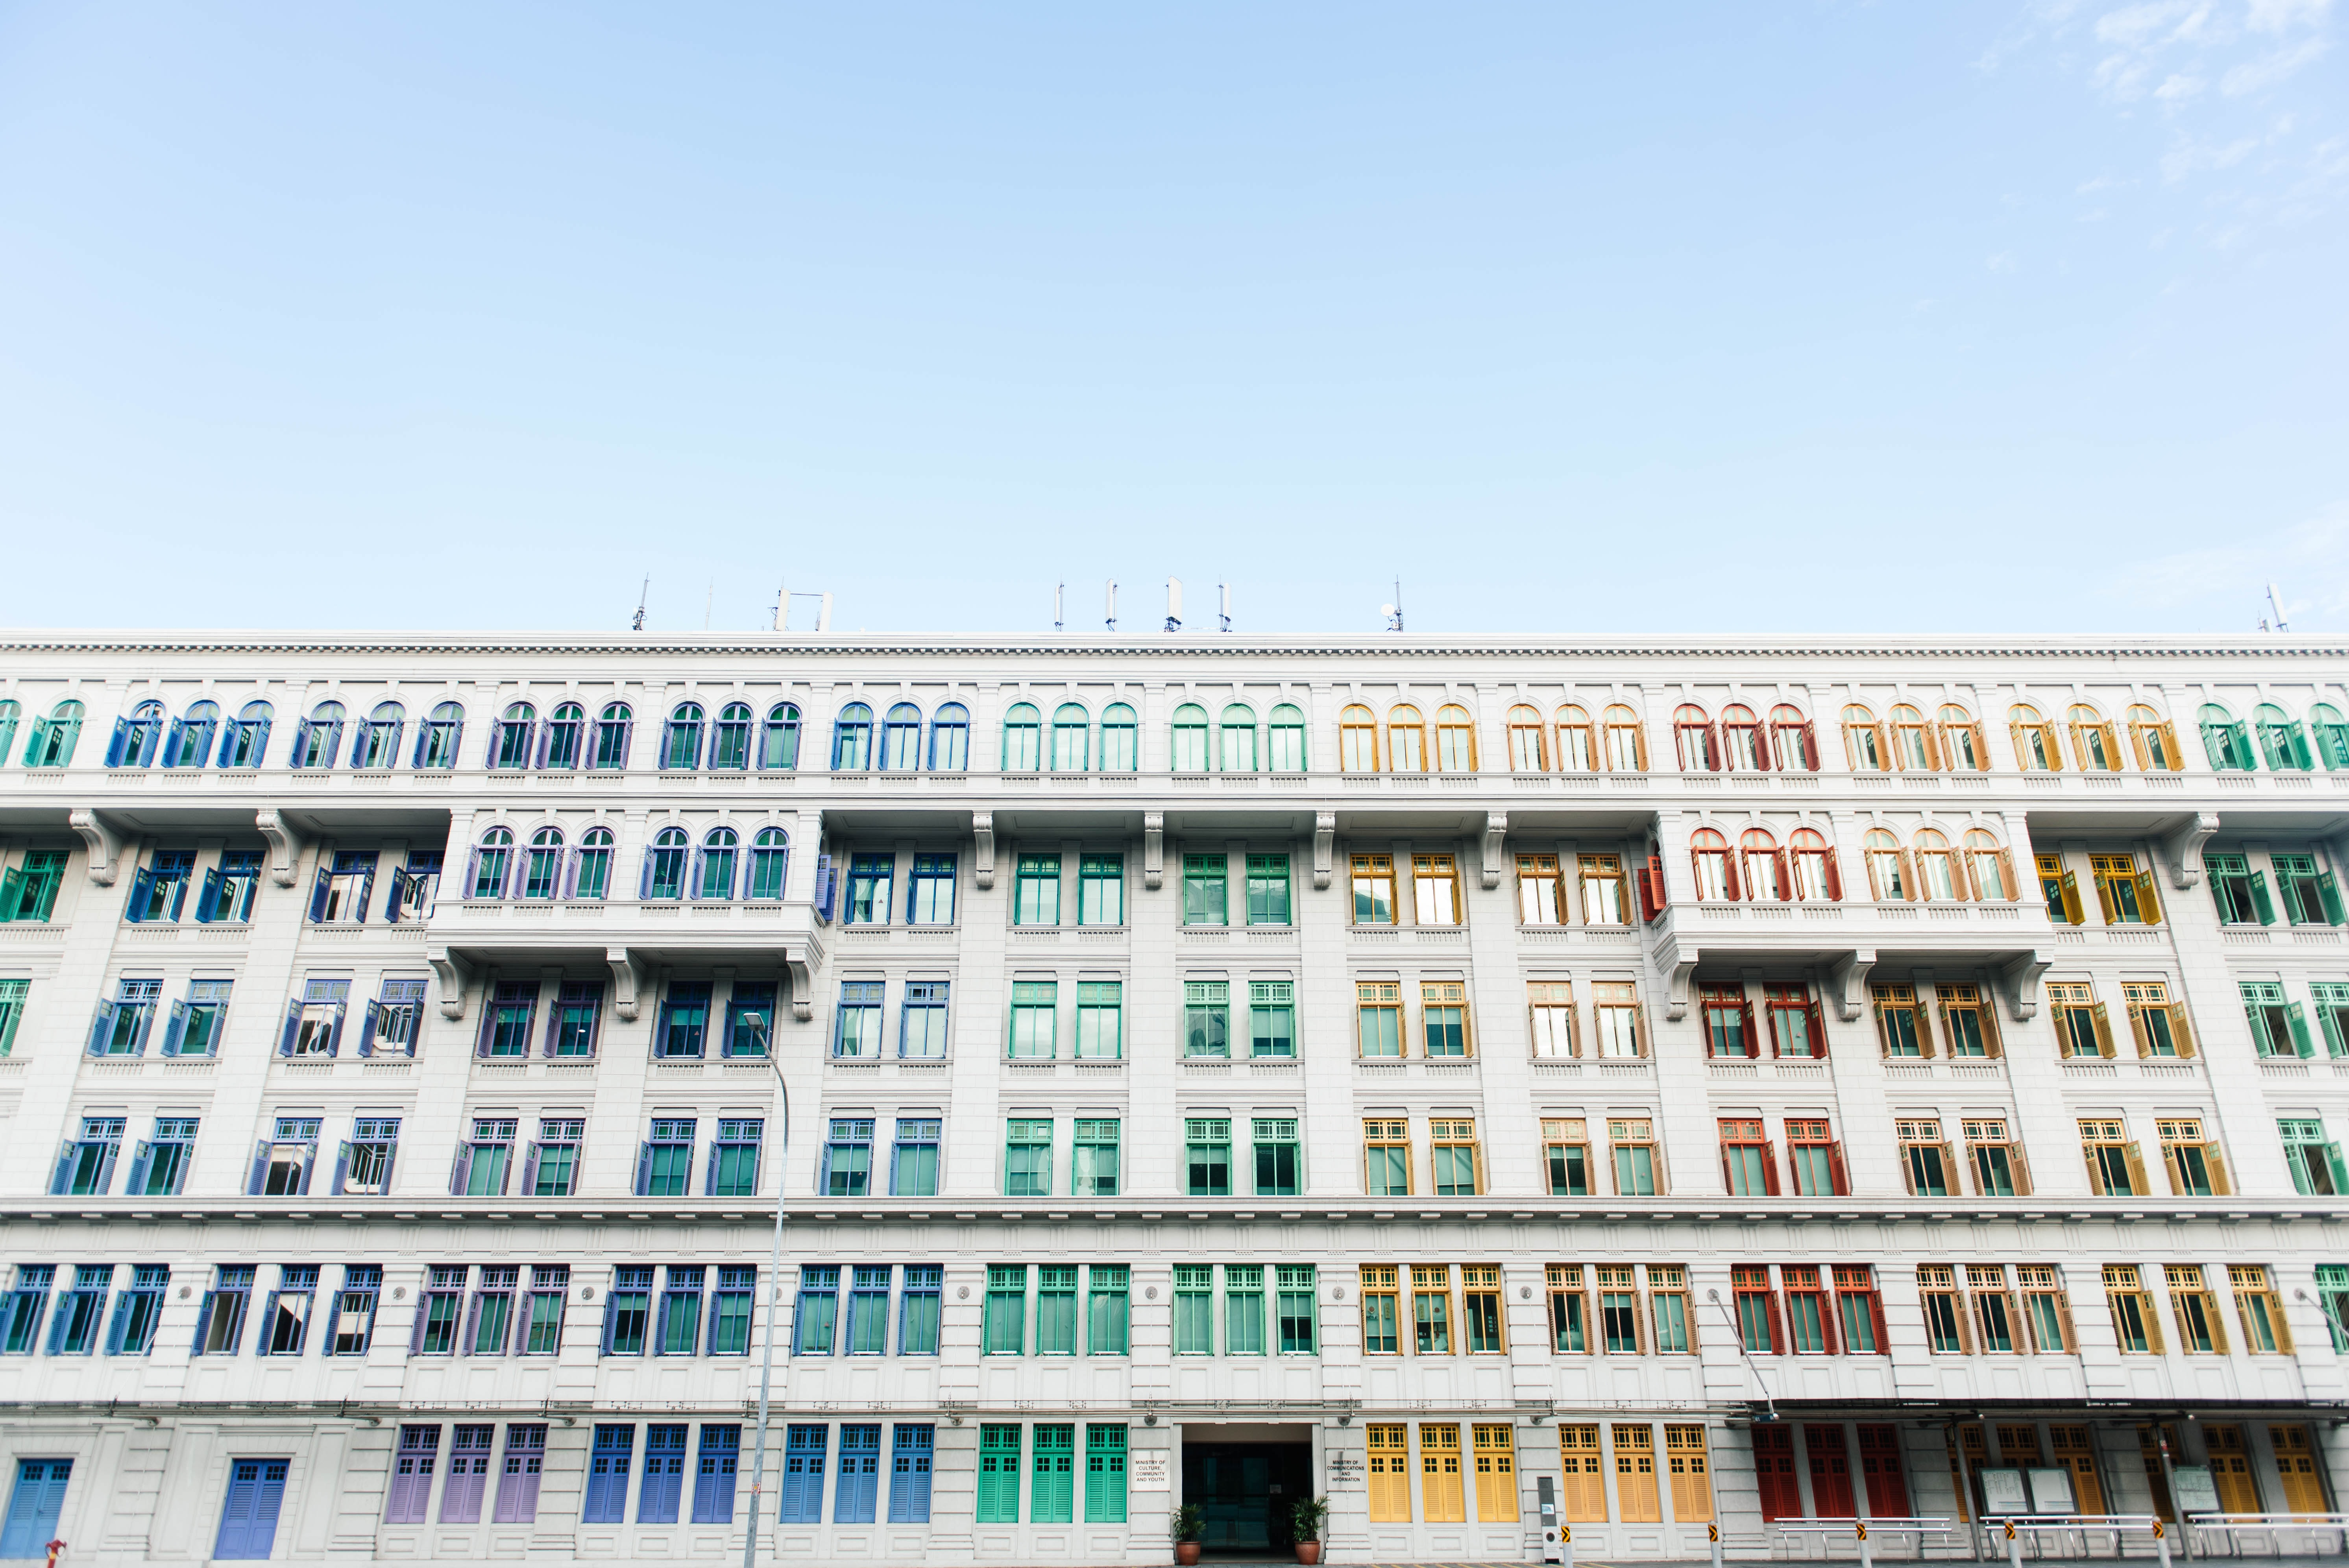 white and multicolored window building at daytime